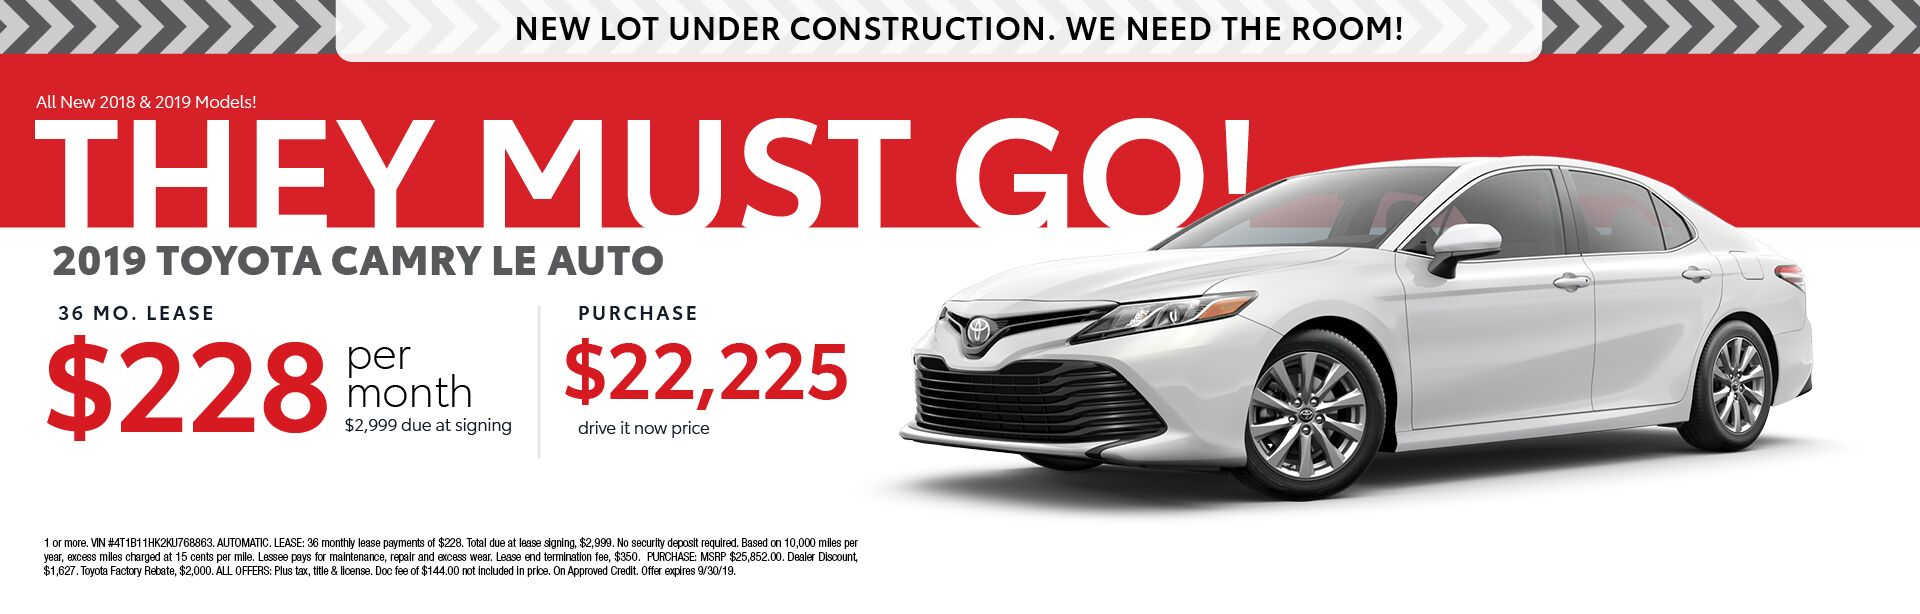 2019 Toyota Camry LE - Lease for $228 per month for 36 months with $2,999 due at signing - Purchase price $22,225